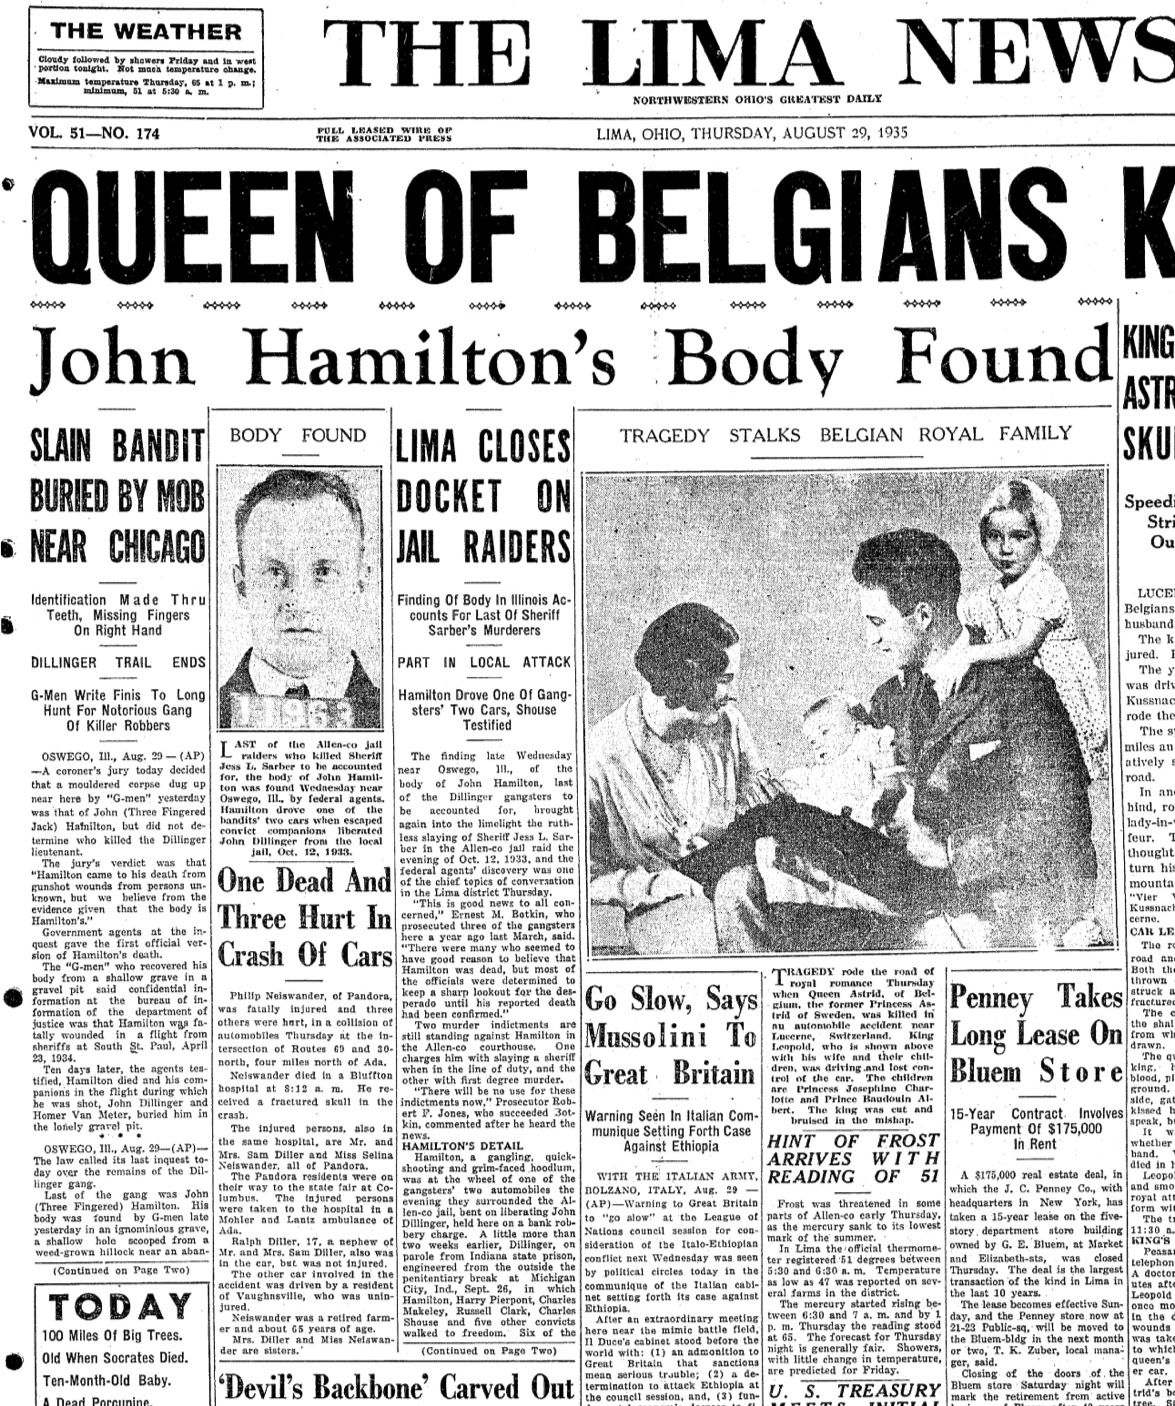 John Hamilton S Body Found From The Lima News Thursday August 29 1935 Volume 51 Number 174 Ancestry Co Newspaper Front Pages Newspaper Newspaper Article